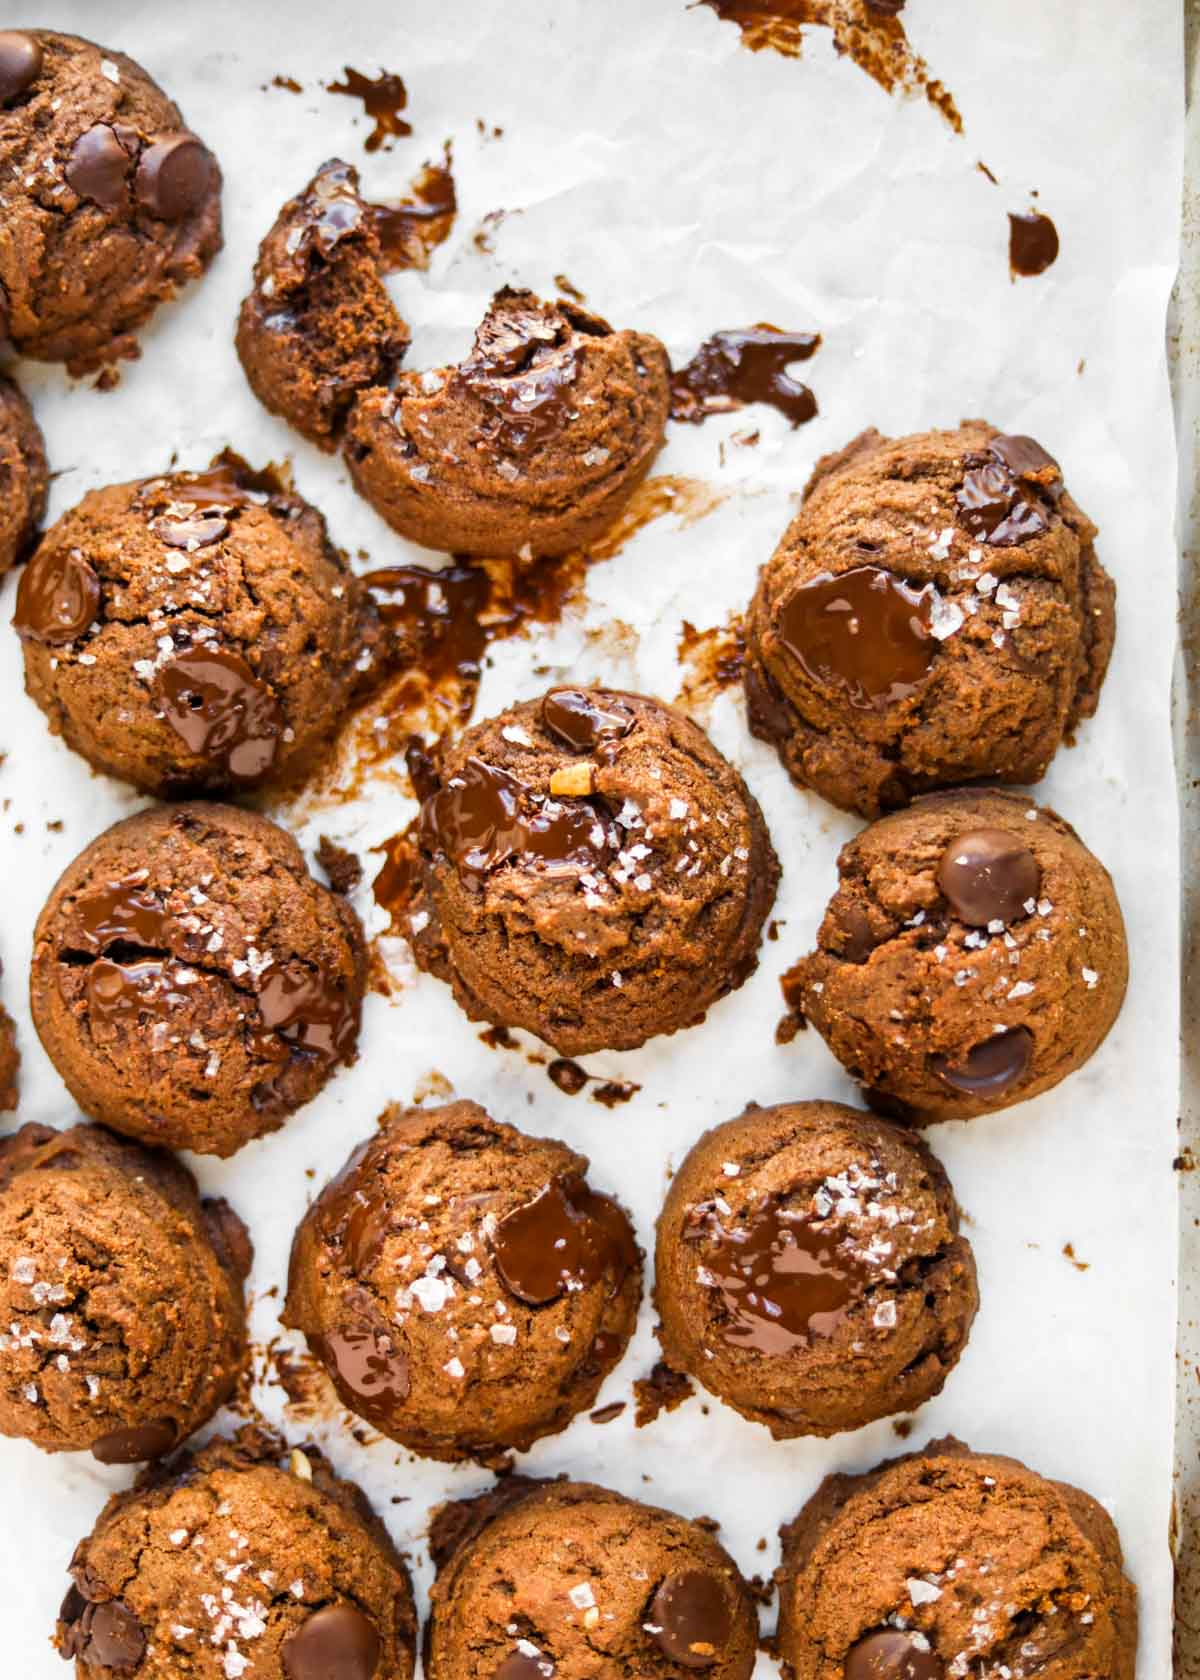 Salted Double Chocolate Peanut Butter Cookies flatlay.